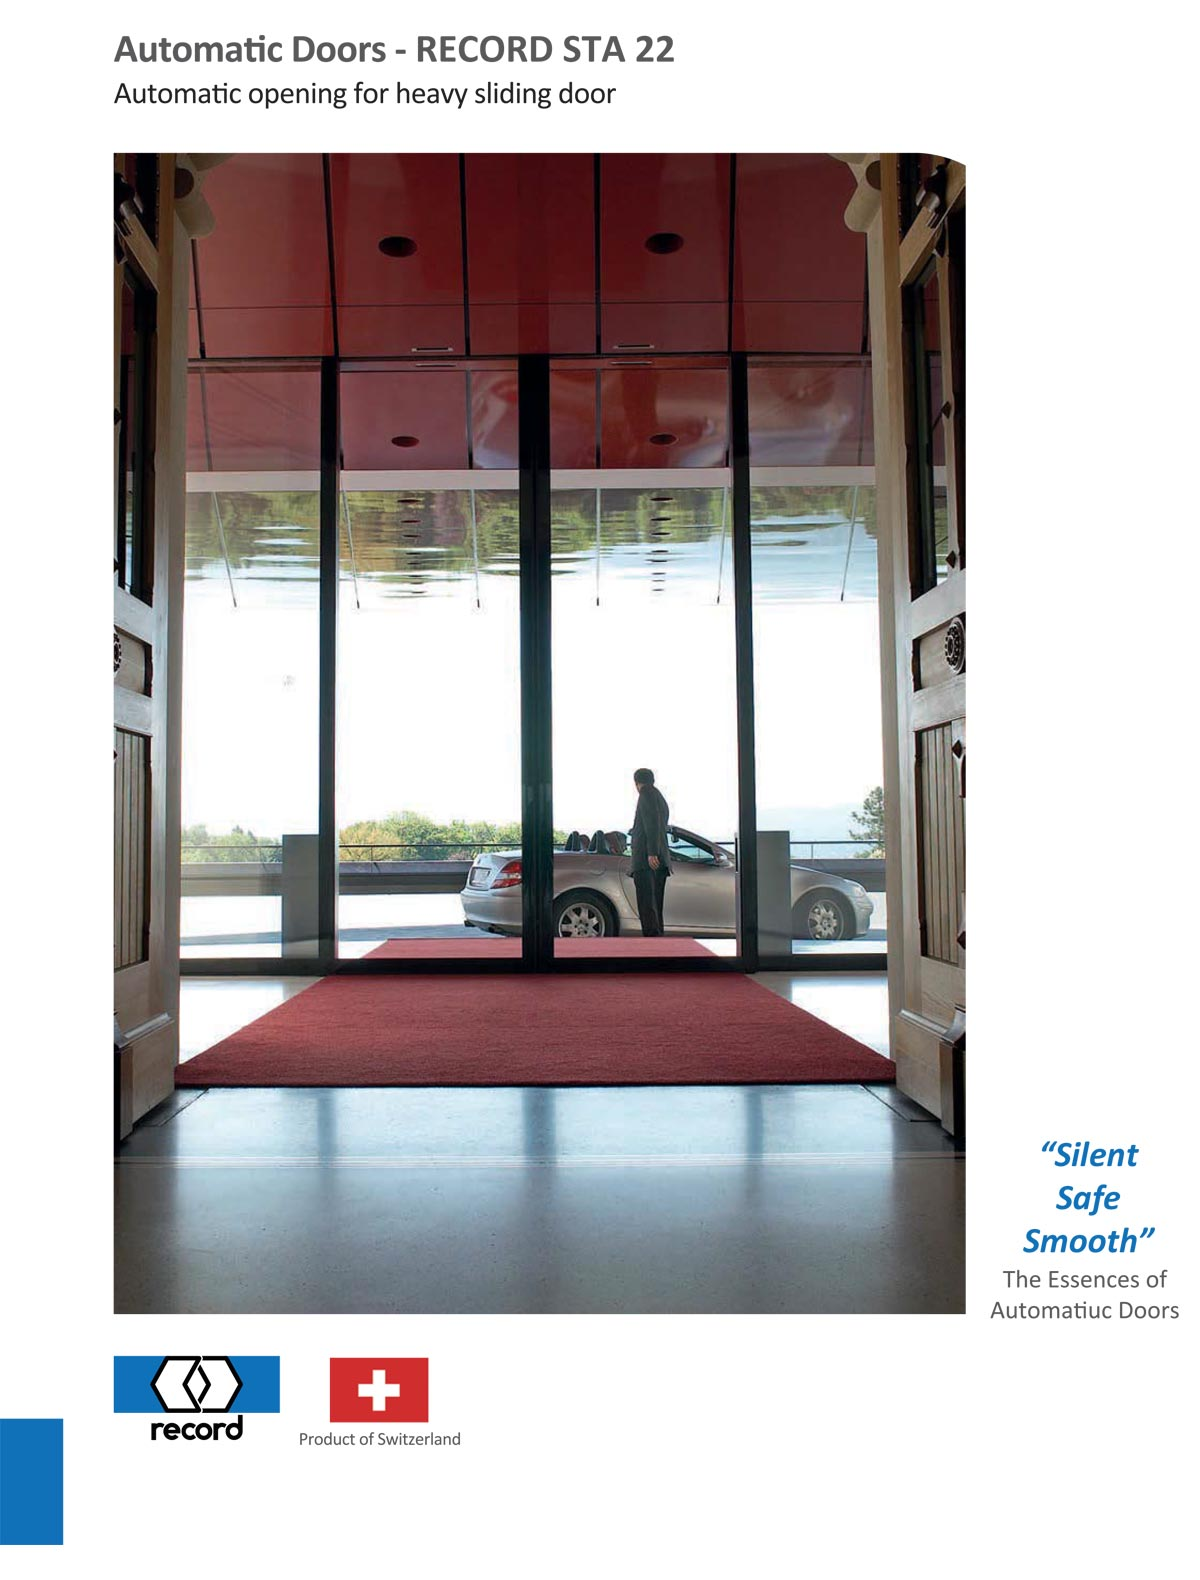 automatic sliding door, automatic sensor door, sensor sliding door, safety door, heavy duty sliding door, telescopic sliding door, revolving door, safety sensor door, supermarket door, automatic folding door, automatic swing door, Fortress Land Security Company Yangon, Myanmar